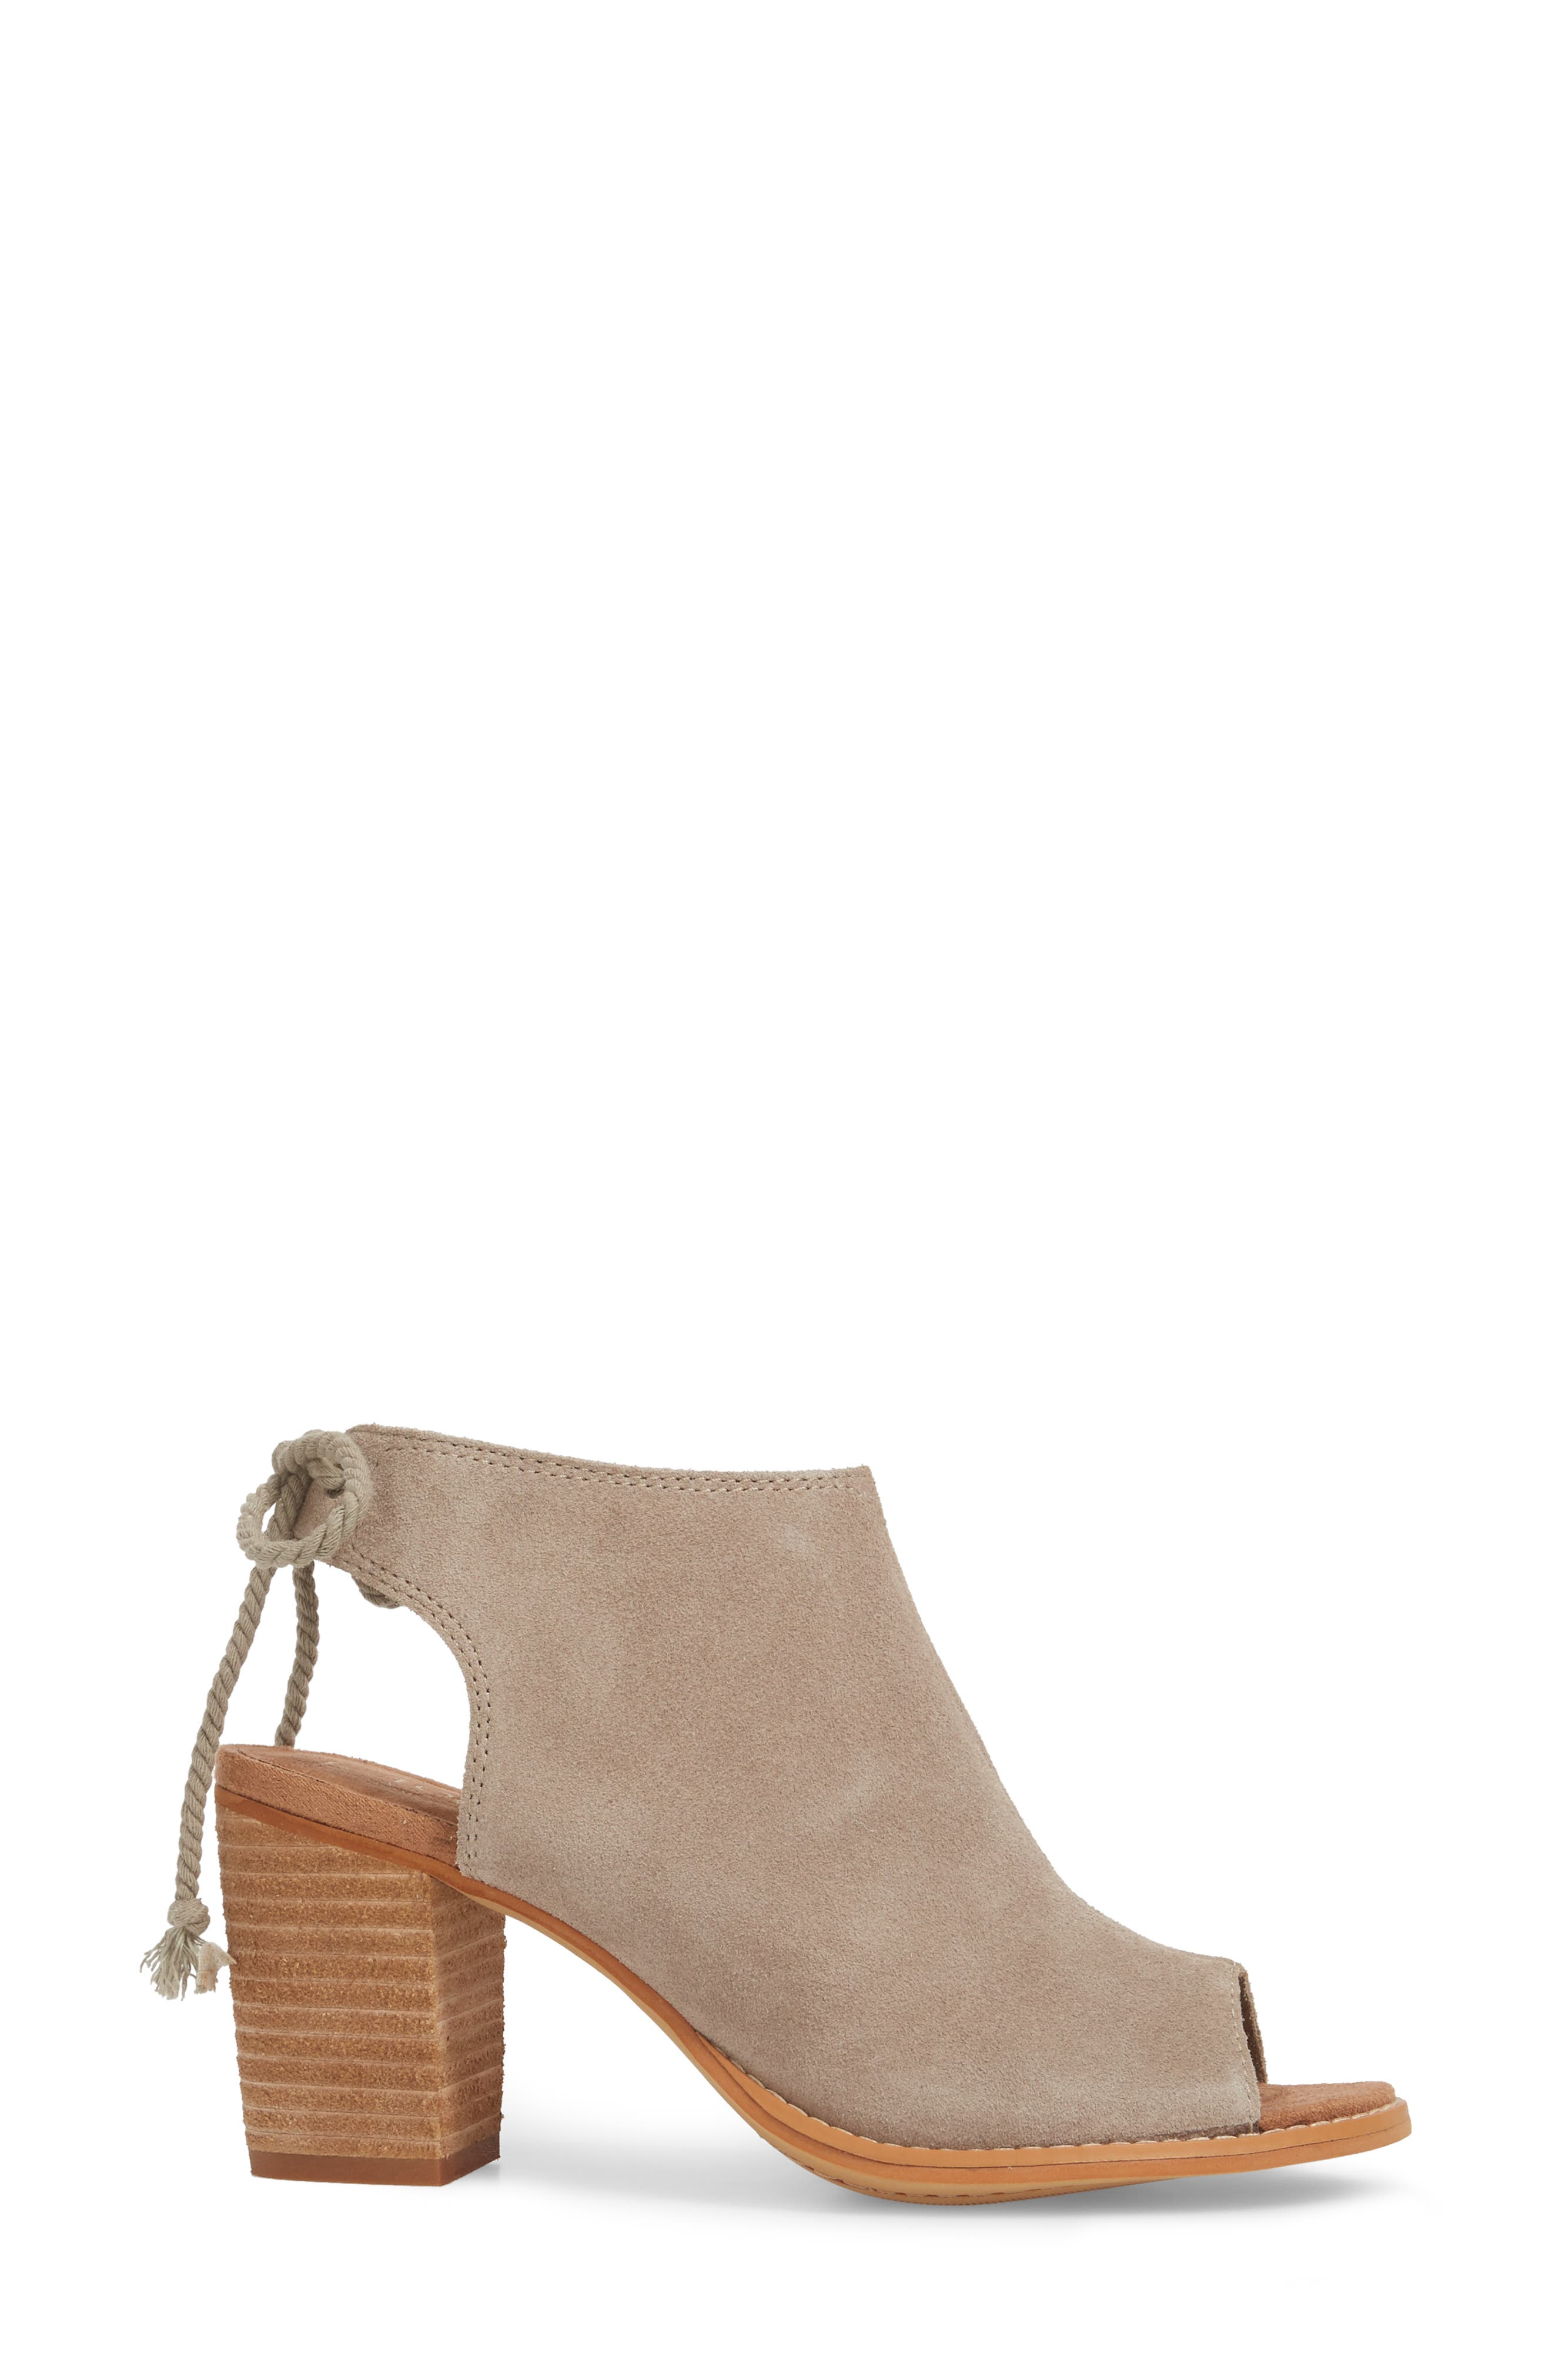 Elba Peep-Toe Bootie,                             Alternate thumbnail 3, color,                             DESERT TAUPE SUEDE